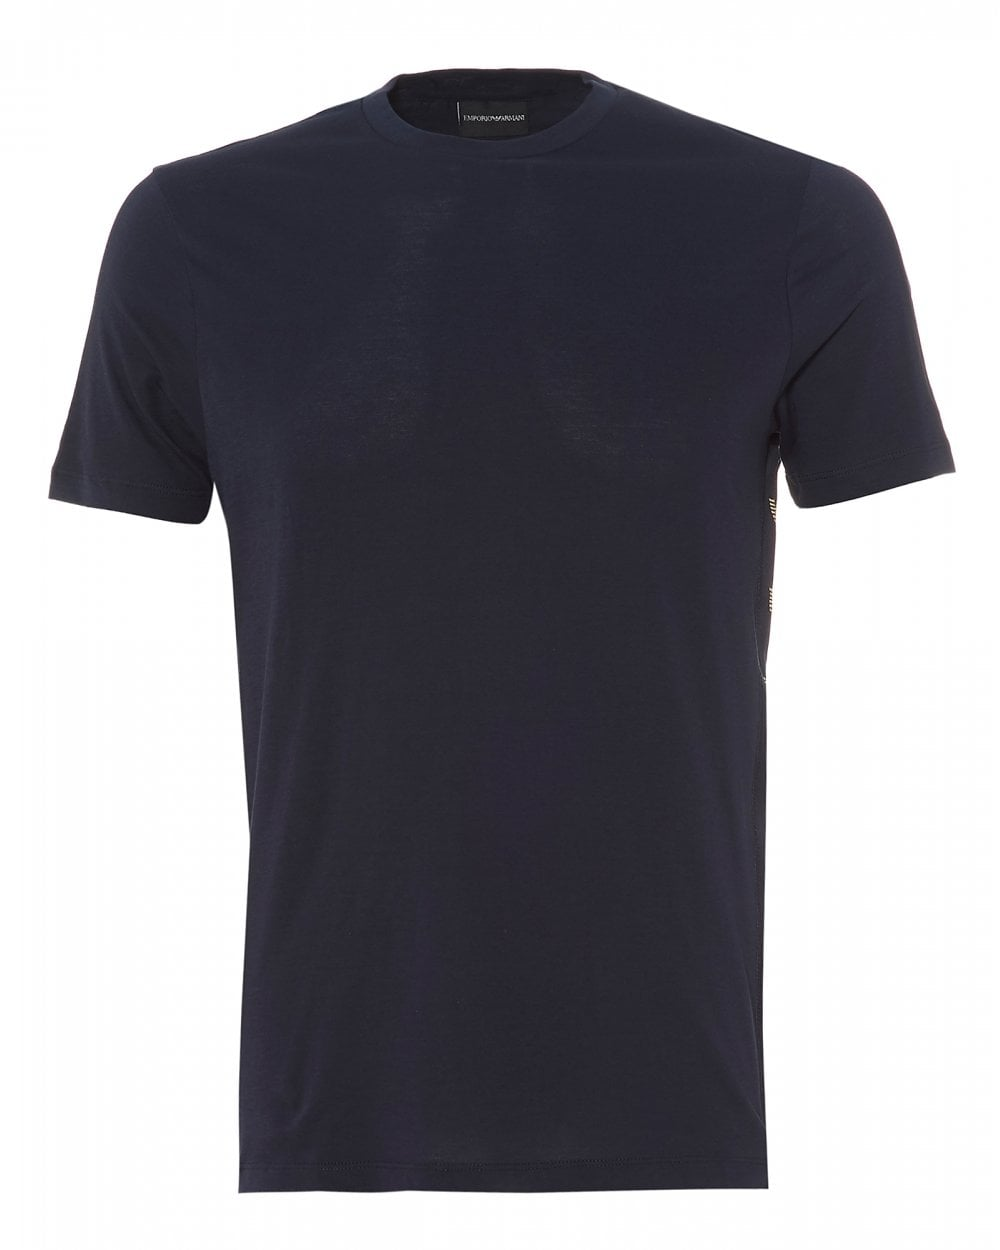 c995632d Mens Side Panel Taped T-Shirt, Navy Blue Regular Fit Tee